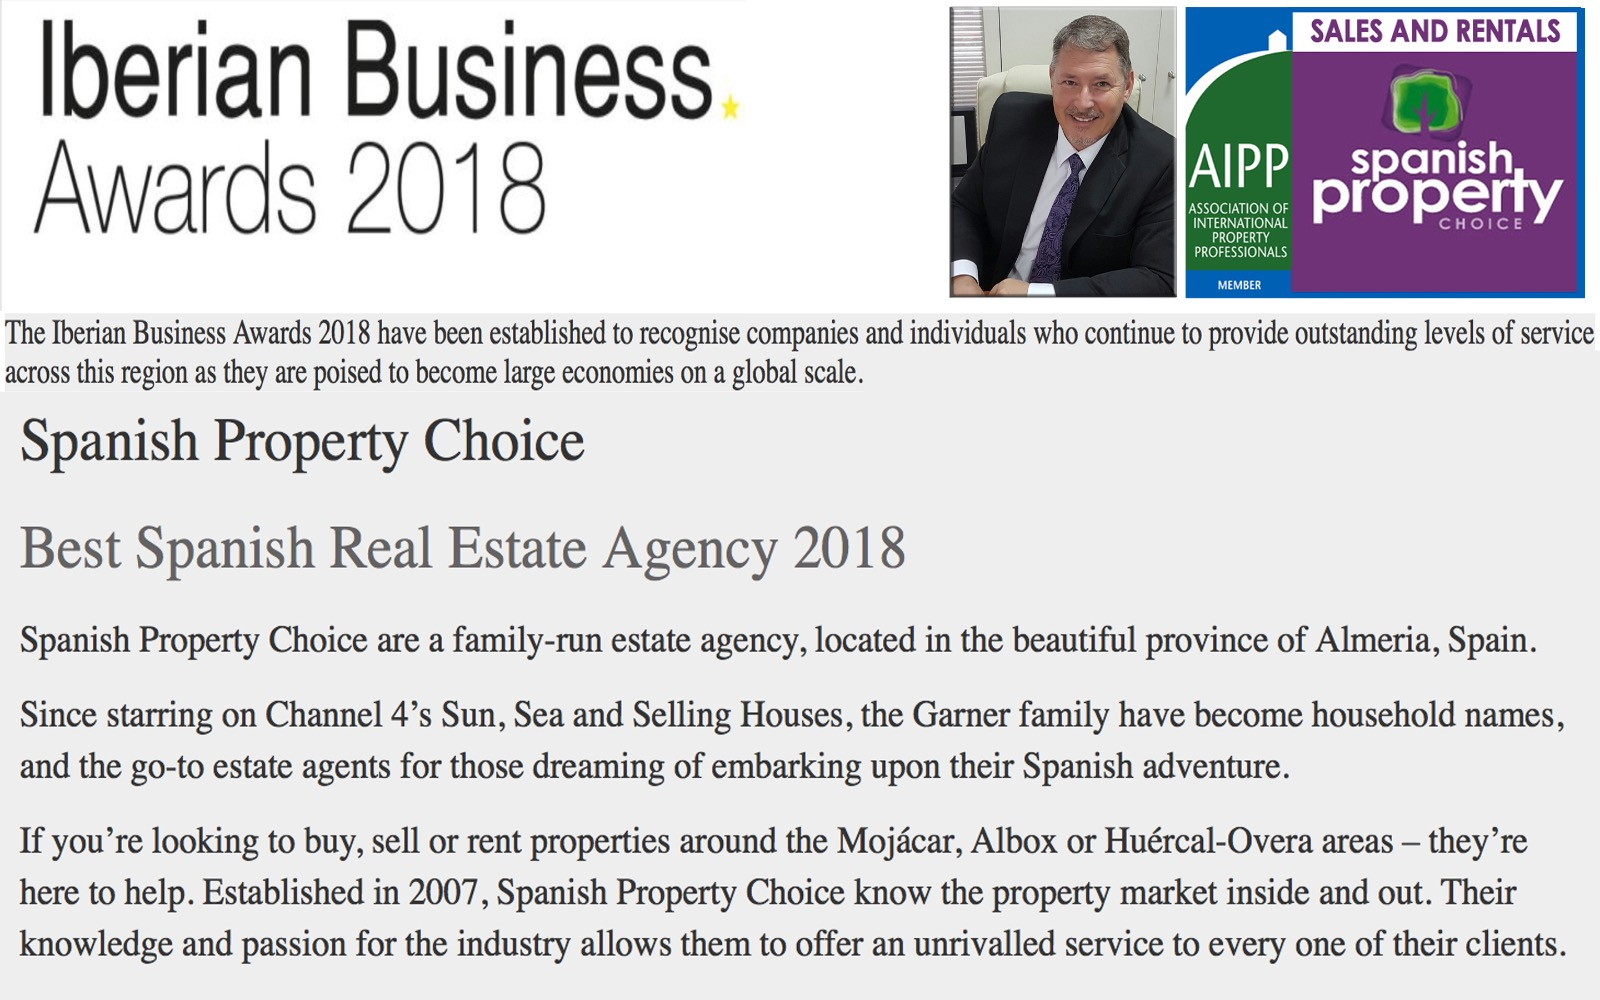 Iberian Business Award Winners 2018 - Spanish Property Choice - Best Spanish Real Estate Agent 2018